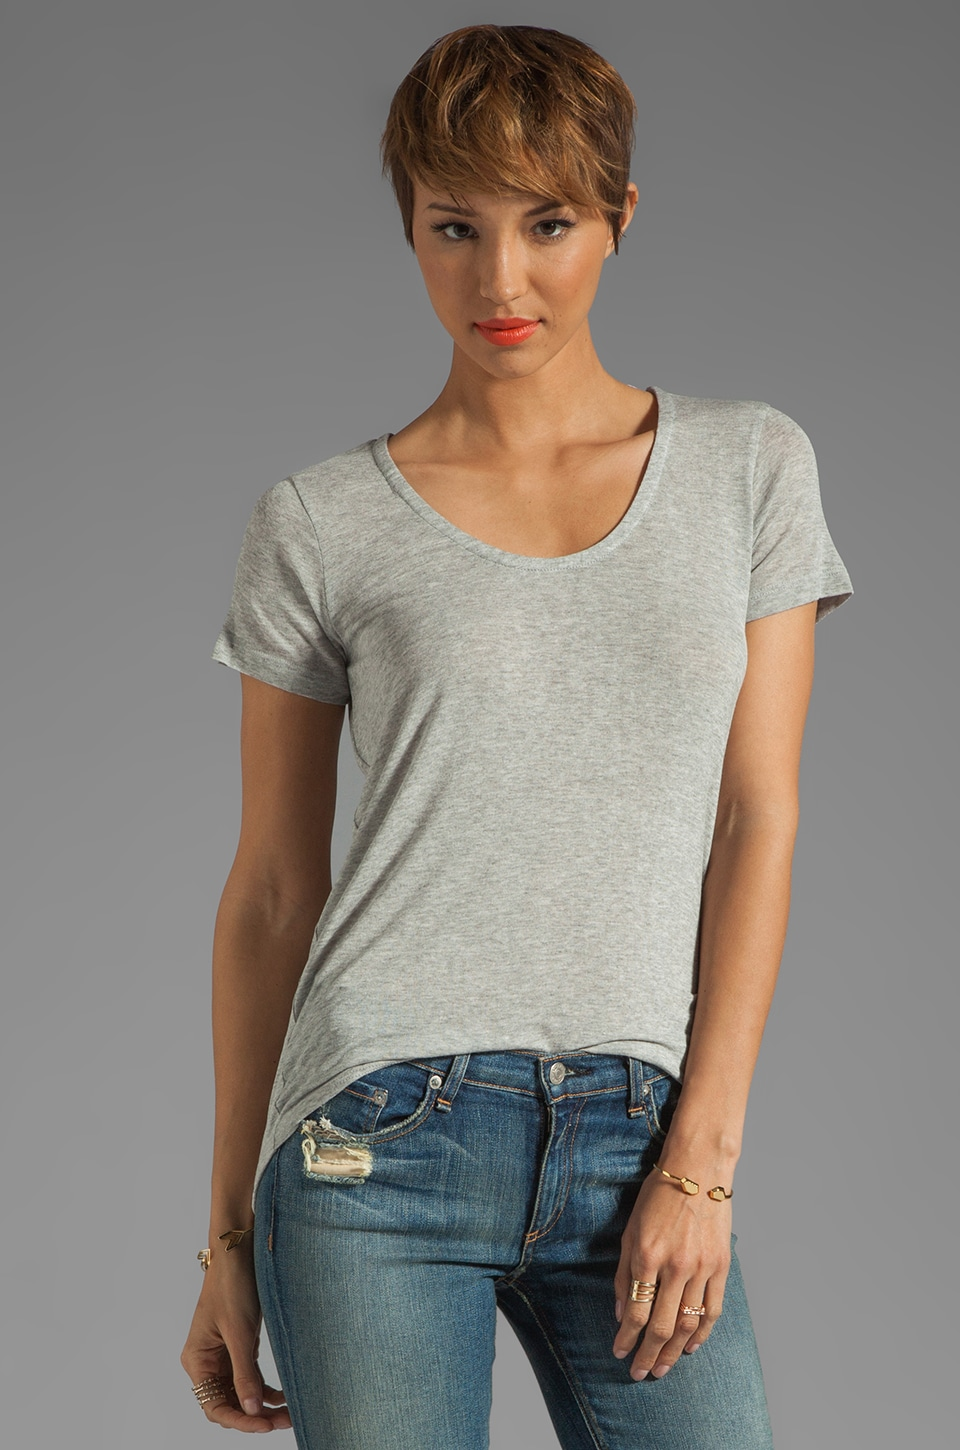 Splendid Drapey Lux Jersey Tee in Heather Grey